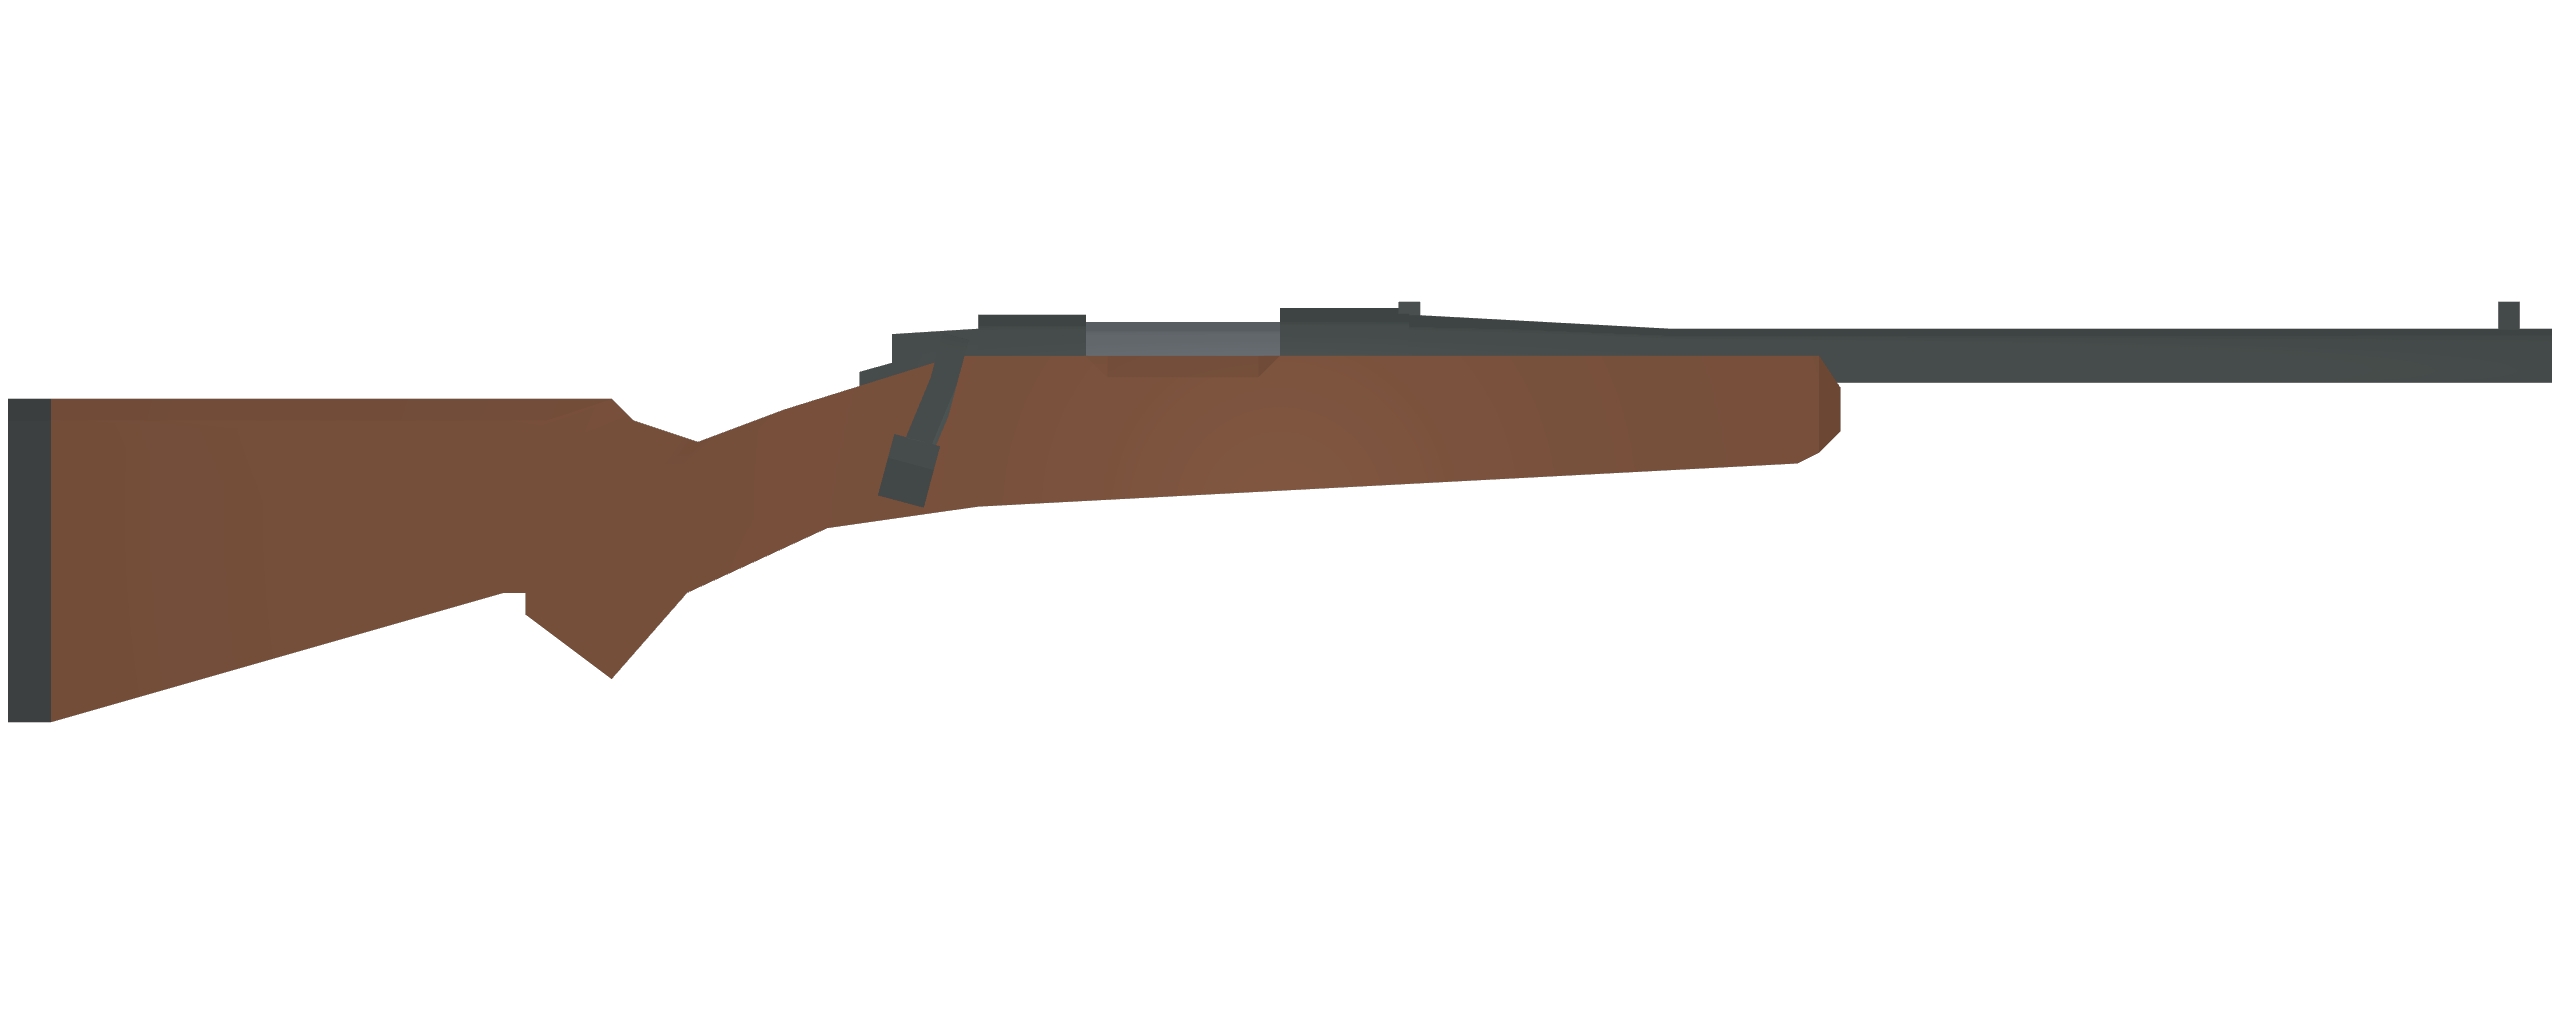 Unturned - All Weapons ID's for Uncreated Warfare Mods - Neutral Weapons - 6F49E48